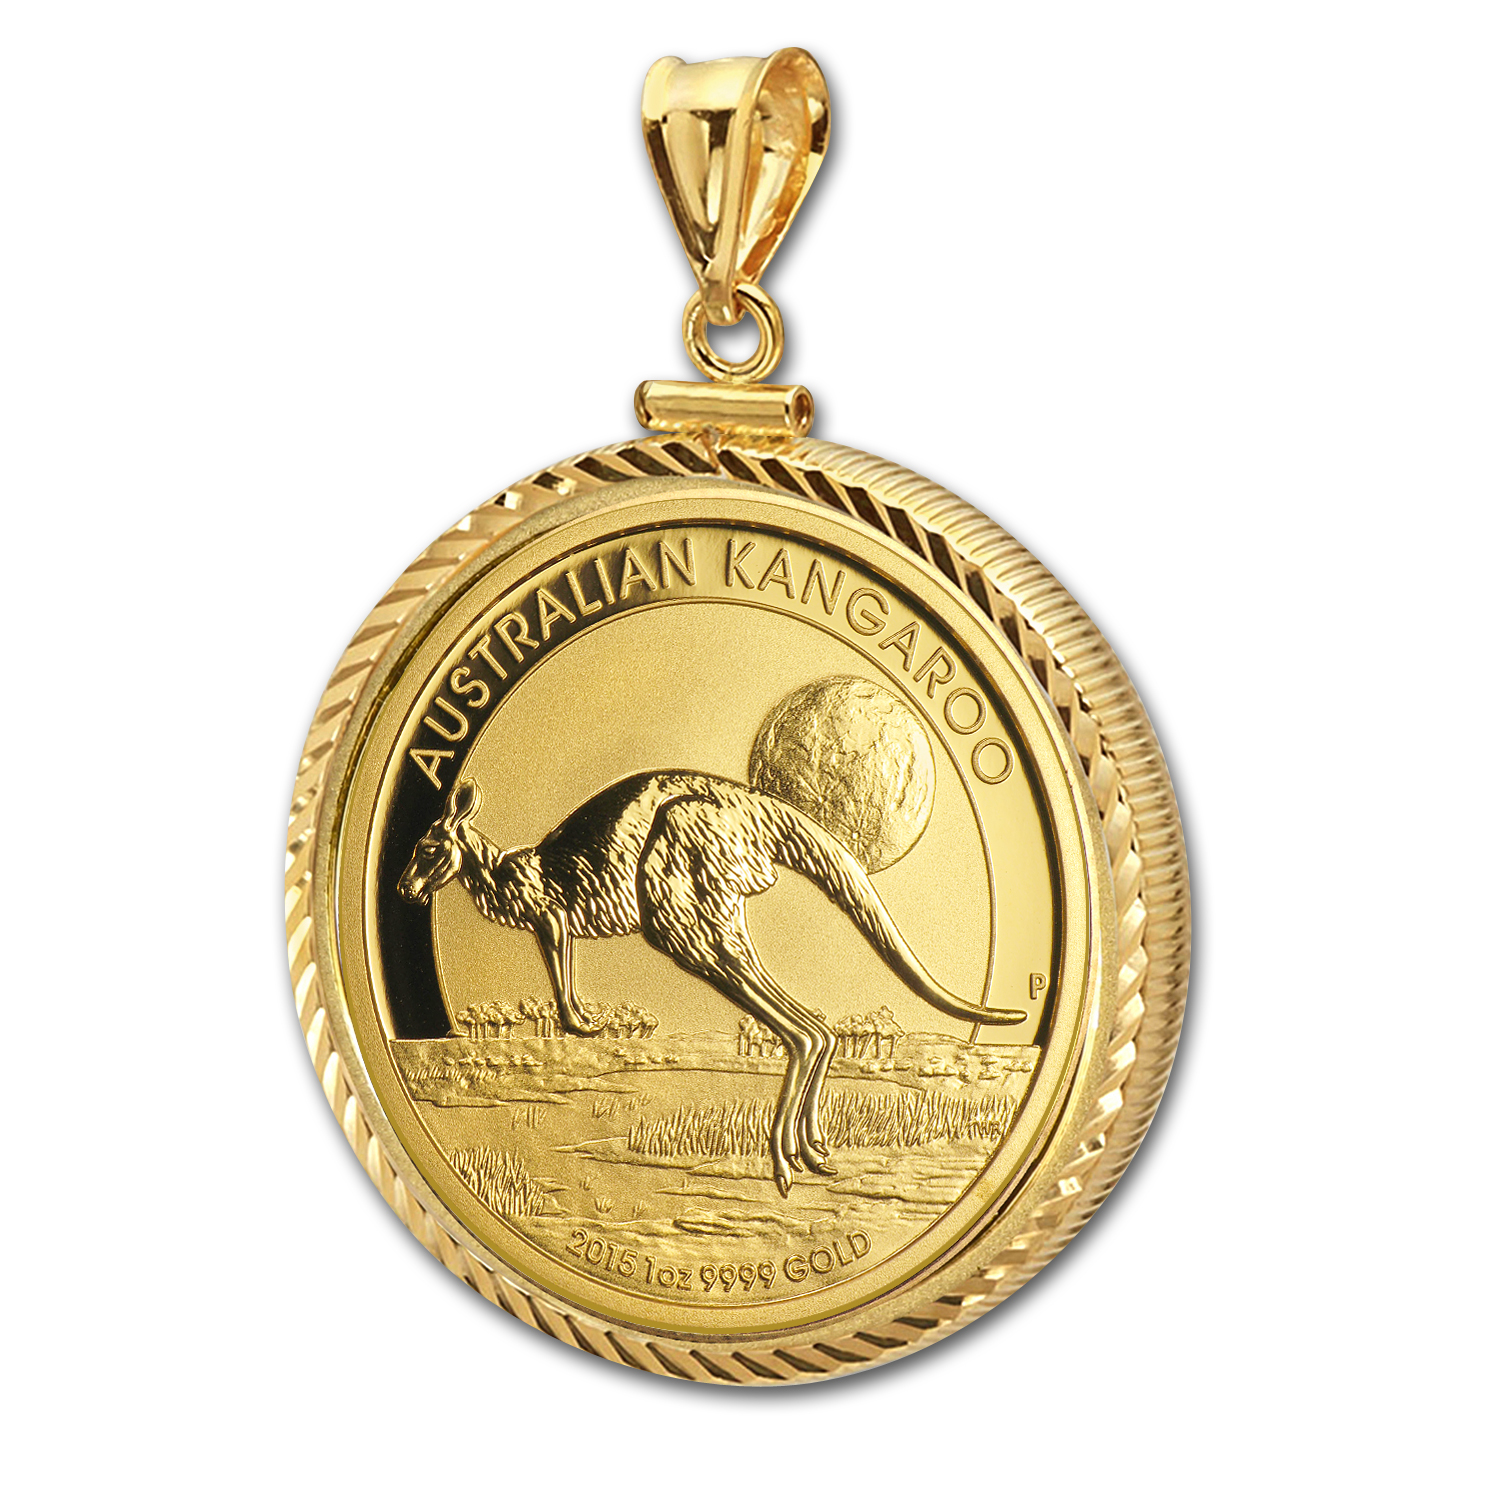 2014 1 oz Gold Kangaroo Pendant (Diamond-ScrewTop Bezel)